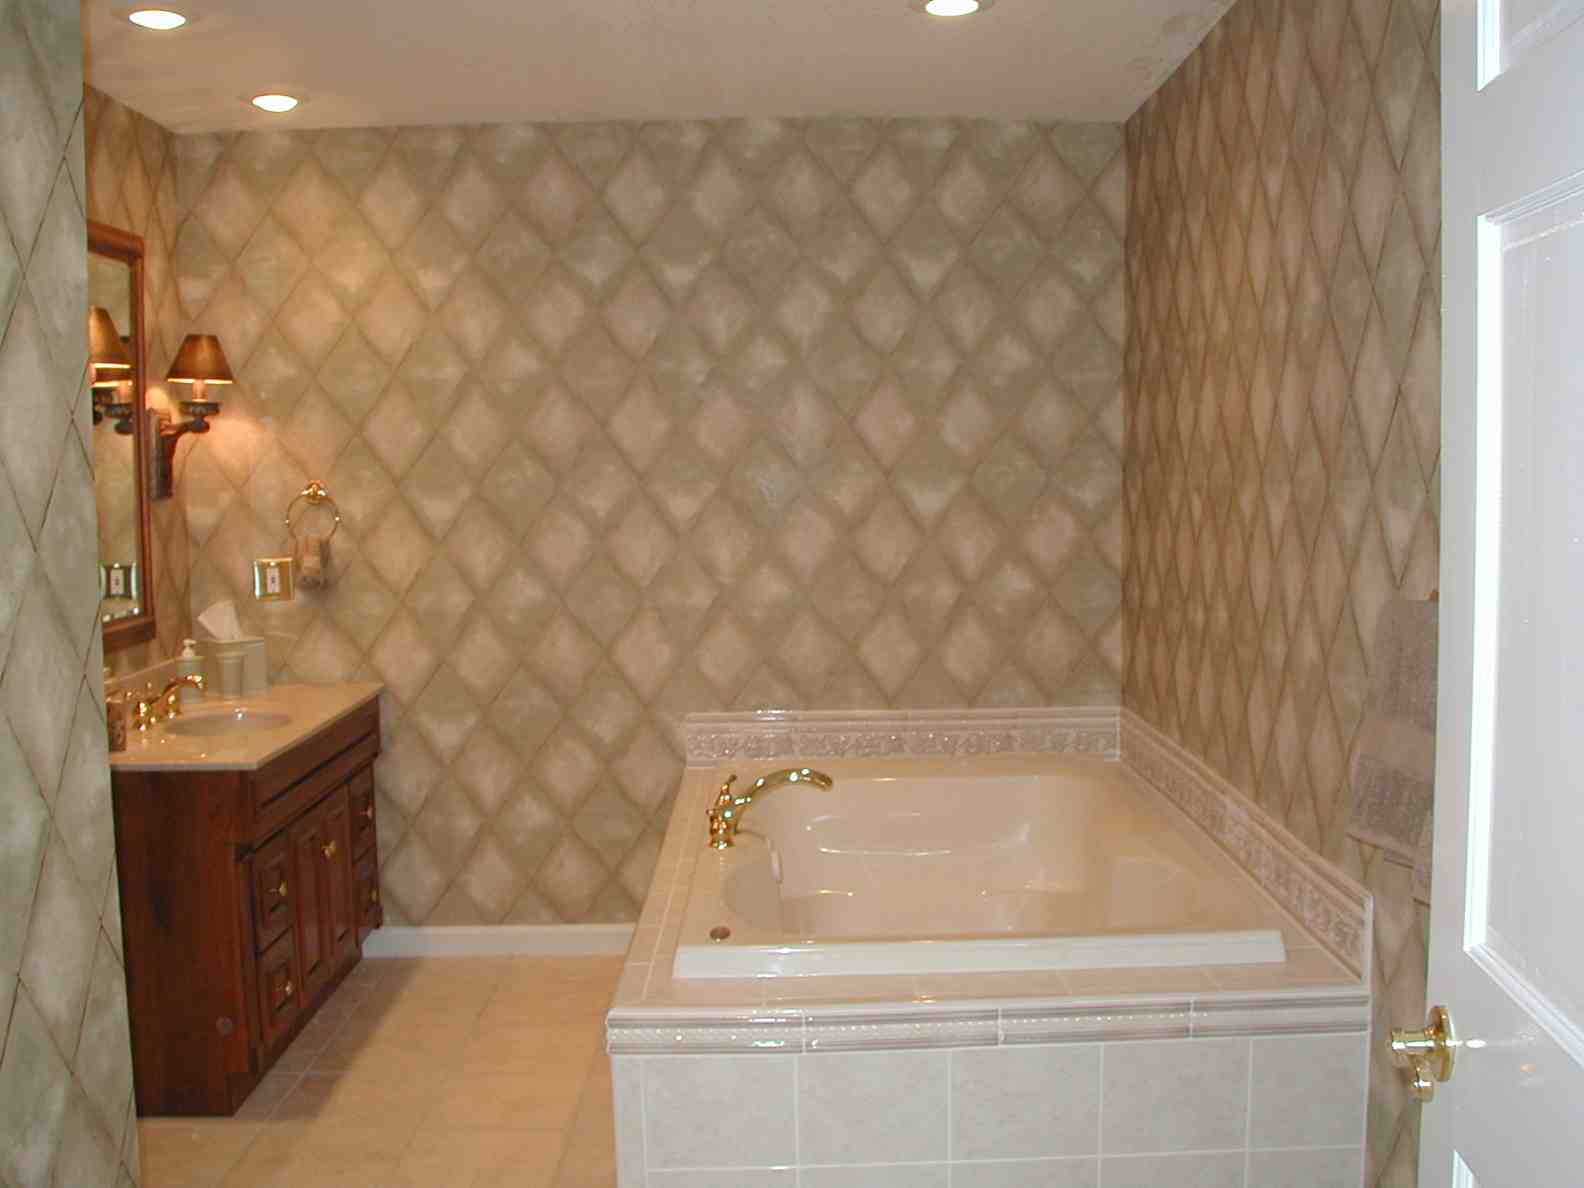 25 wonderful large glass bathroom tiles Images of bathroom tile floors